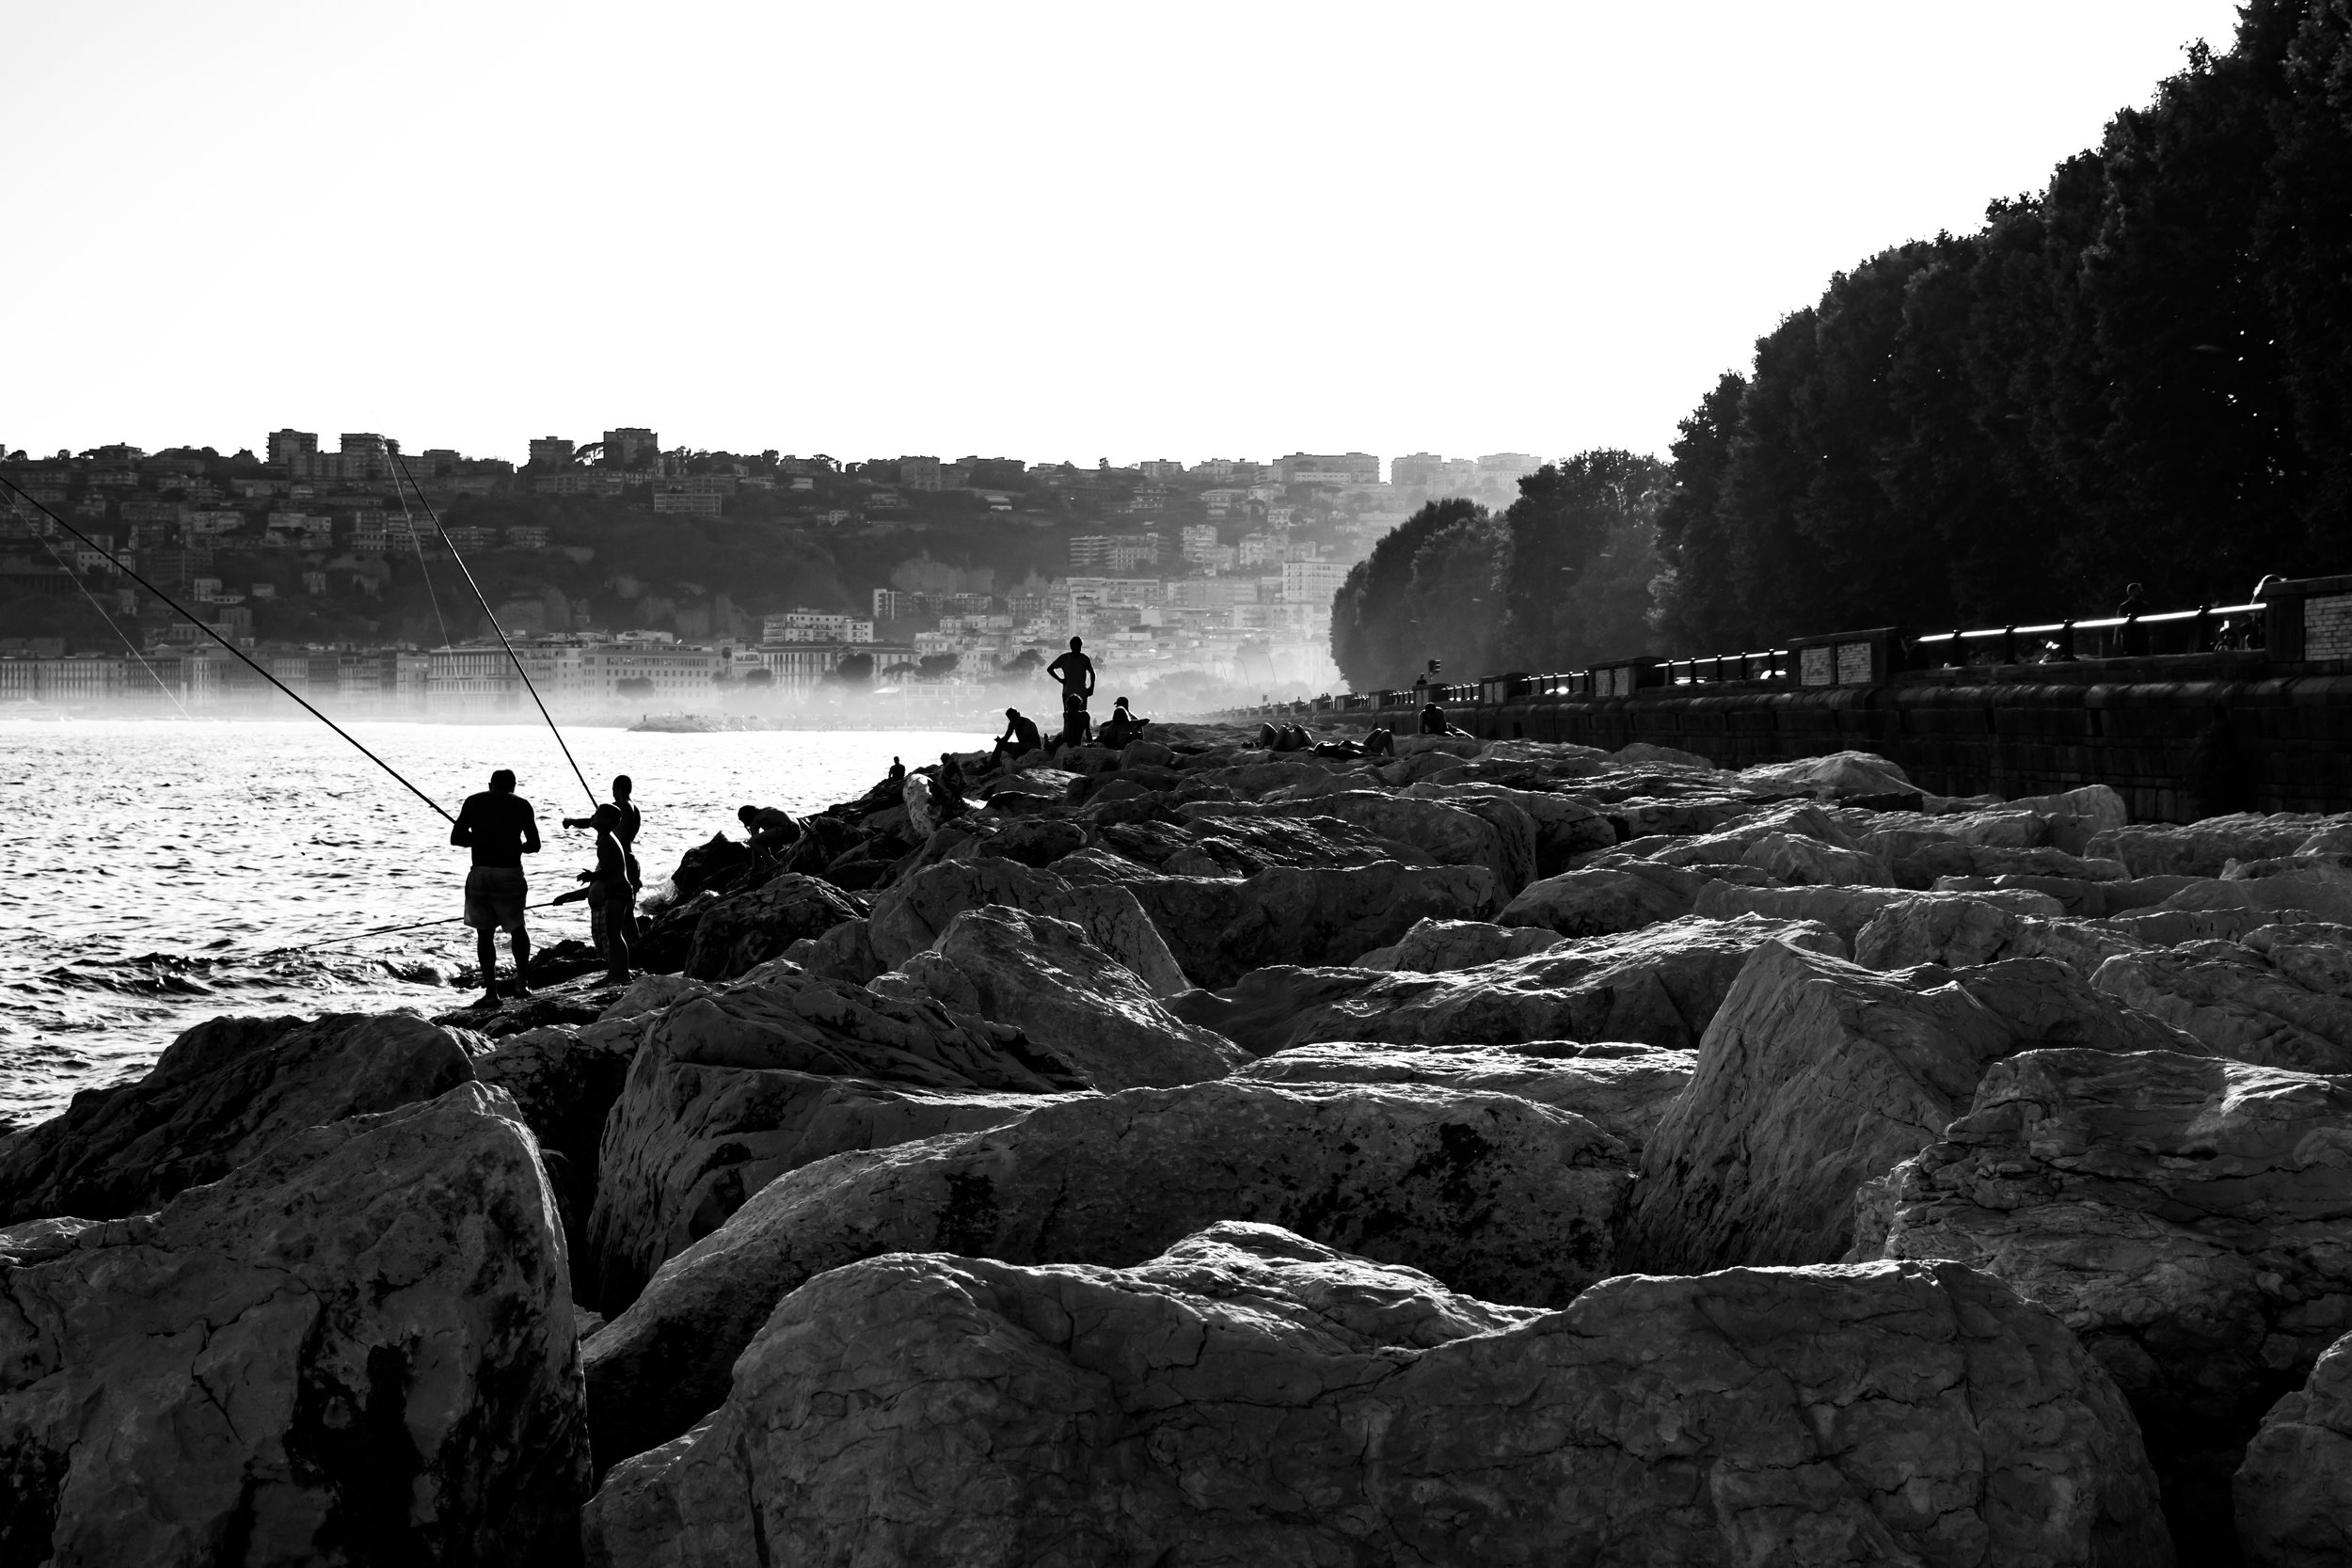 FISHING ON THE COAST OF NAPLES IN BLACK AND WHITE